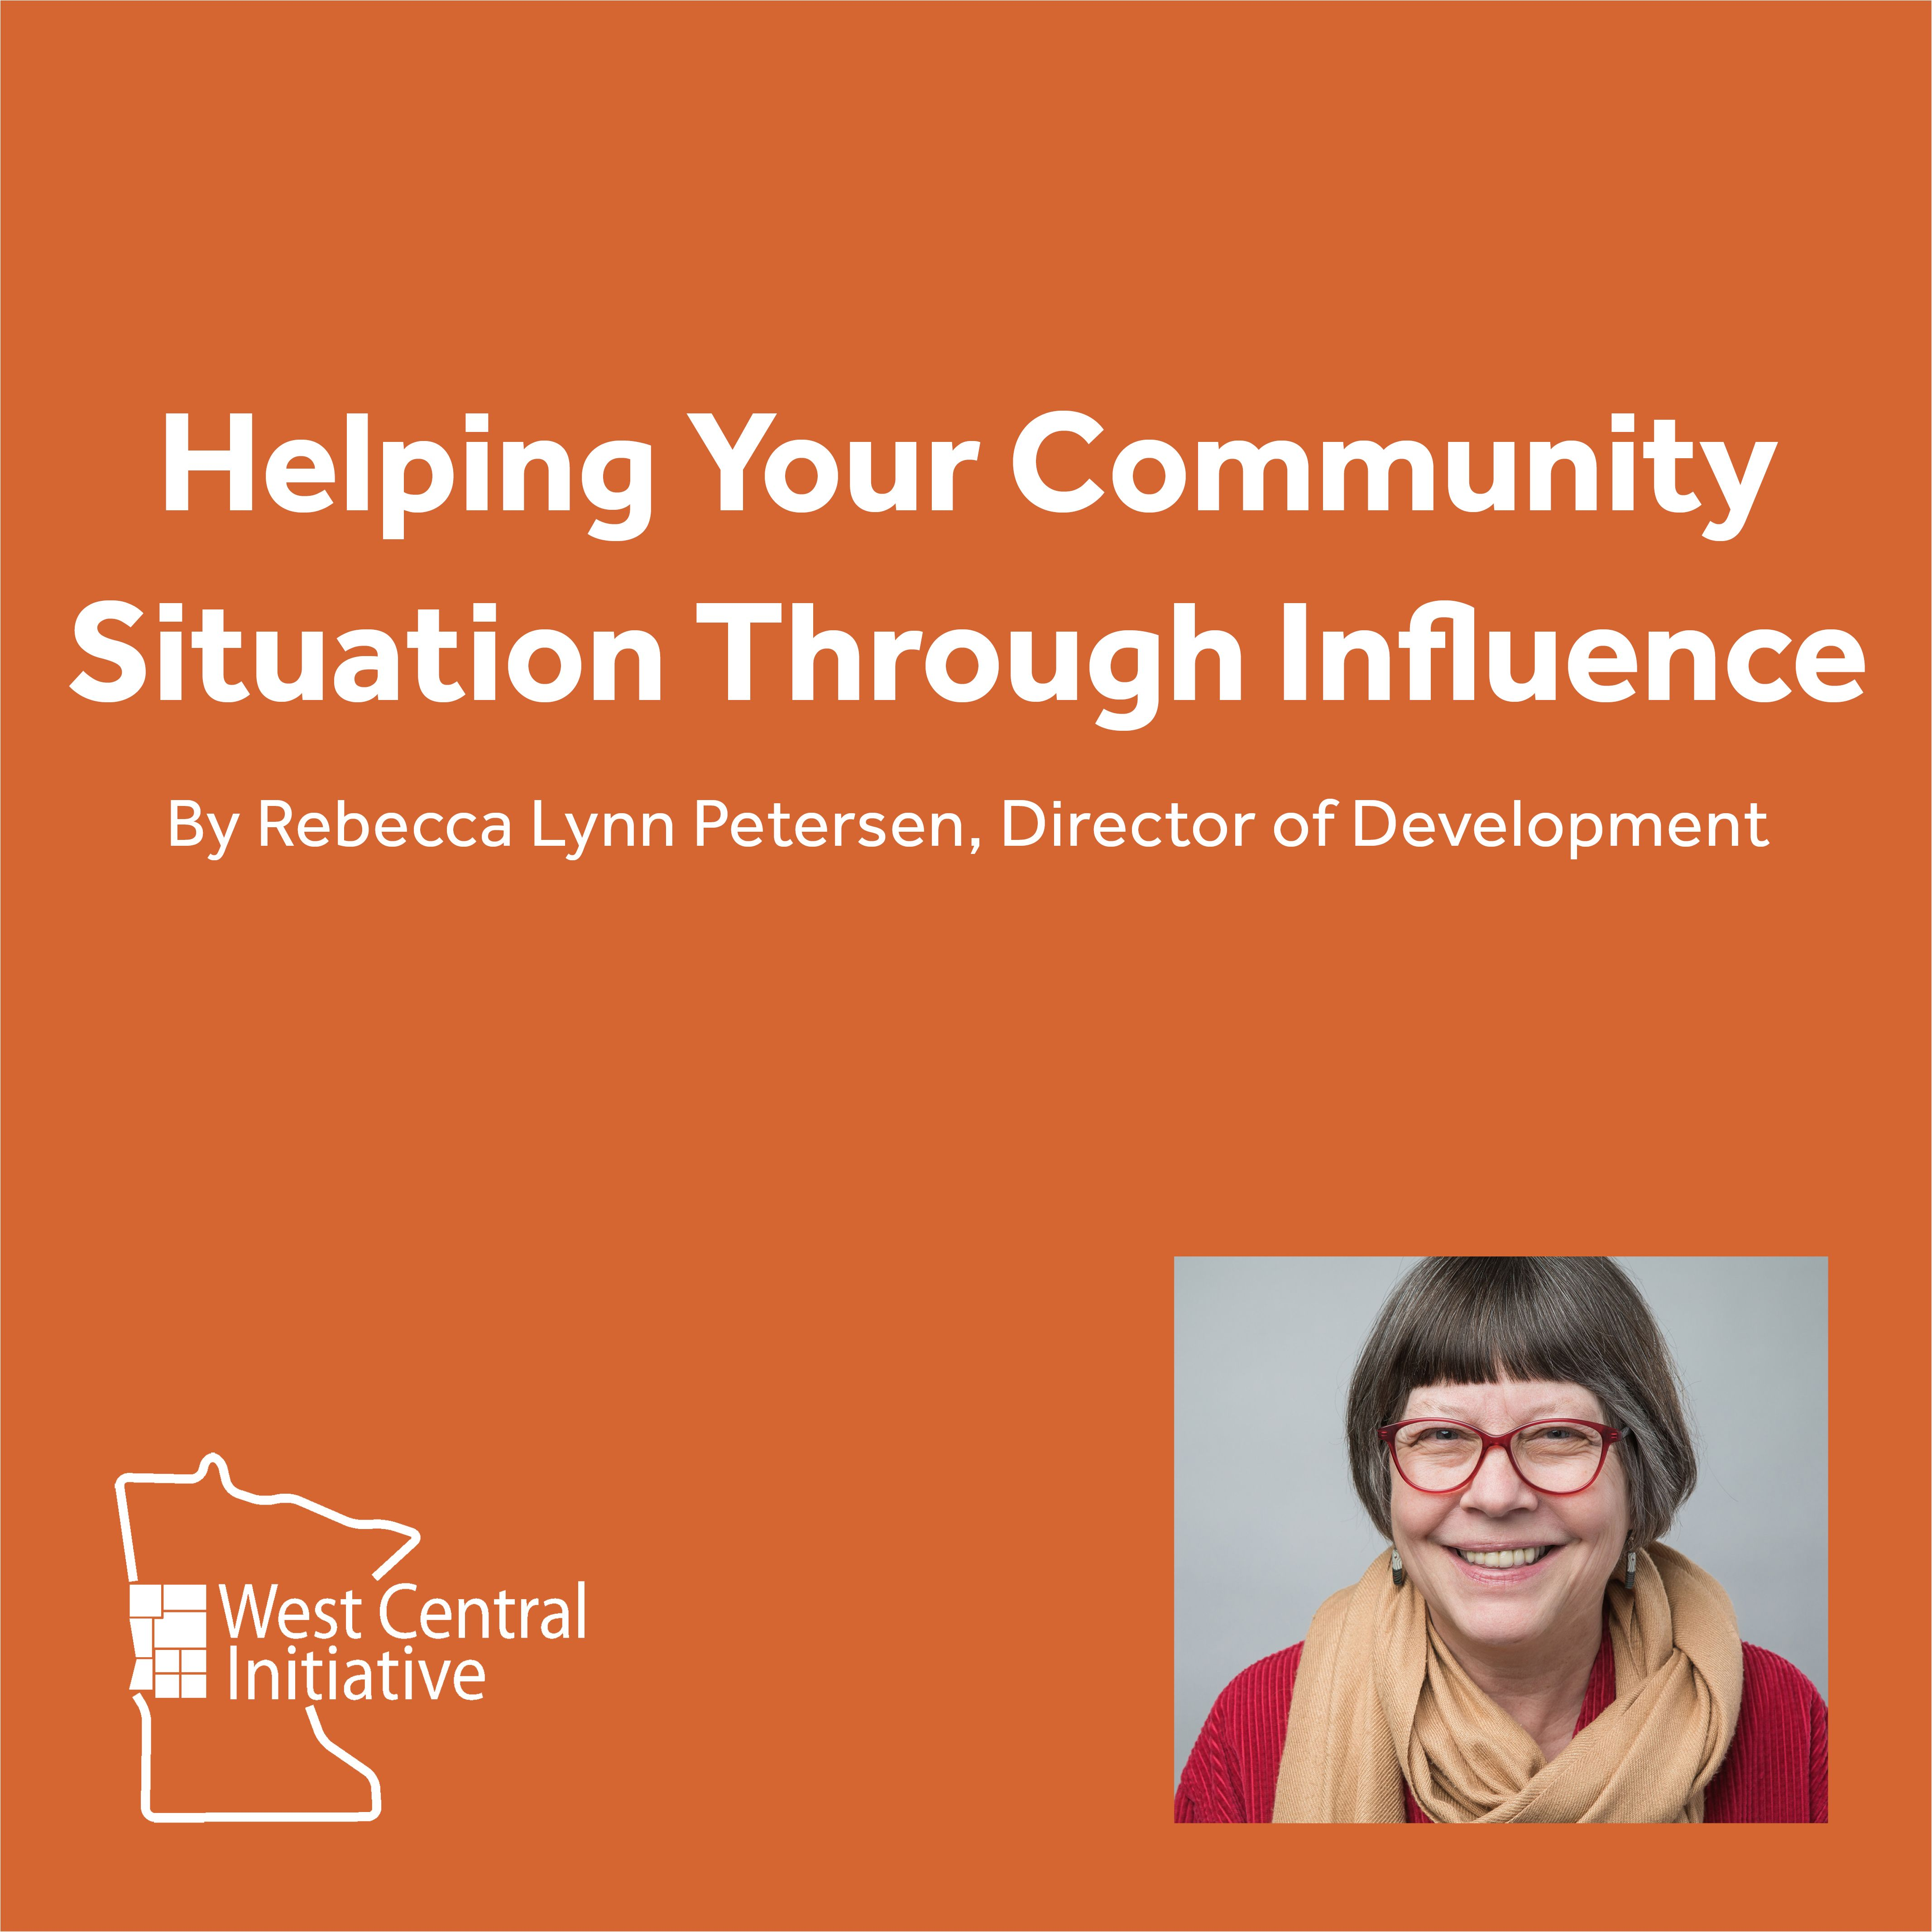 Helping Your Community Situation Through Influence